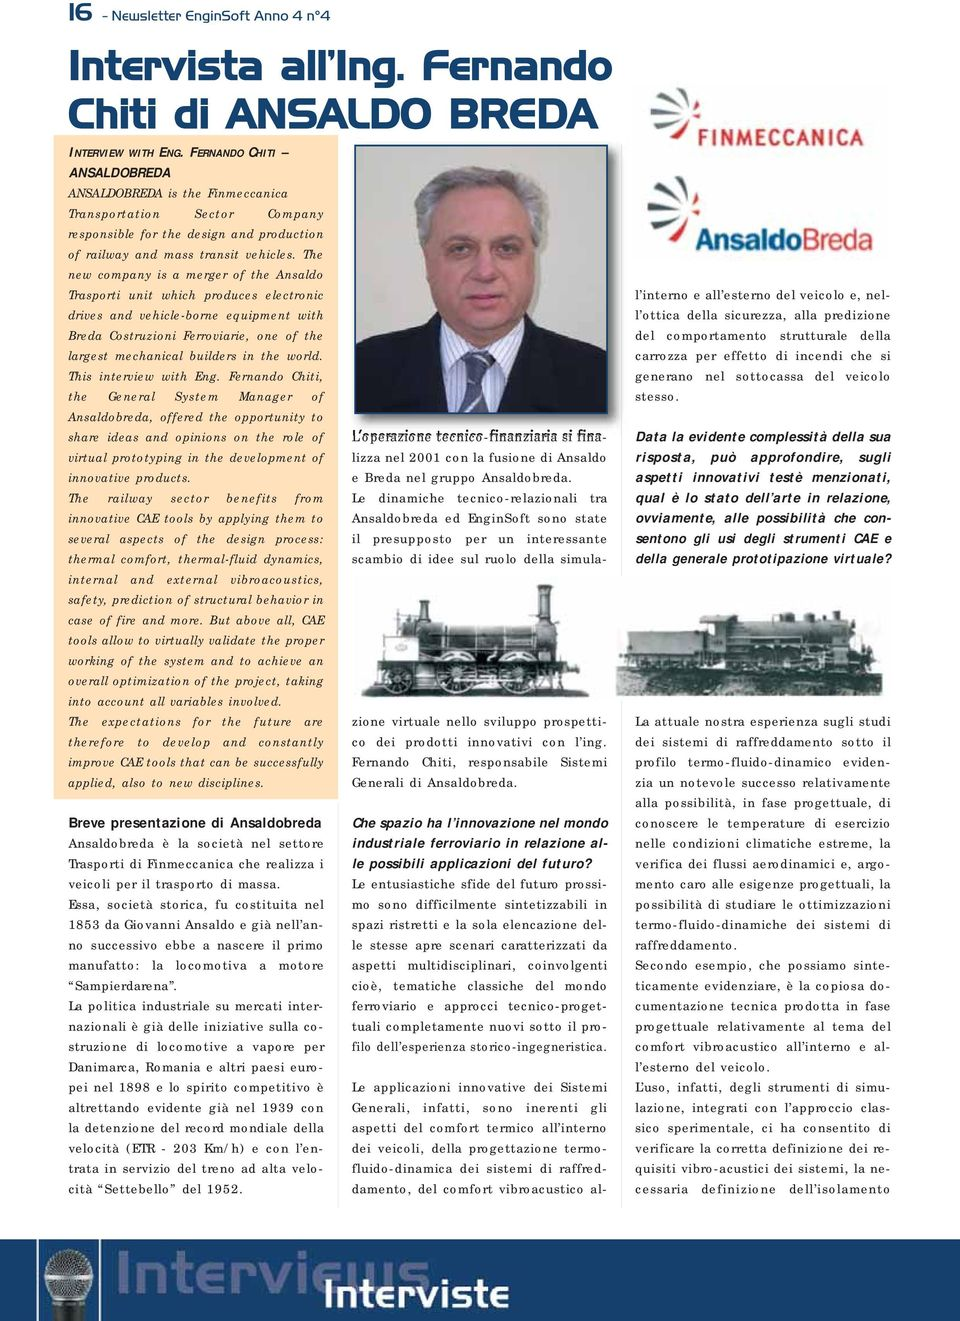 The new company is a merger of the Ansaldo Trasporti unit which produces electronic drives and vehicle-borne equipment with Breda Costruzioni Ferroviarie, one of the largest mechanical builders in